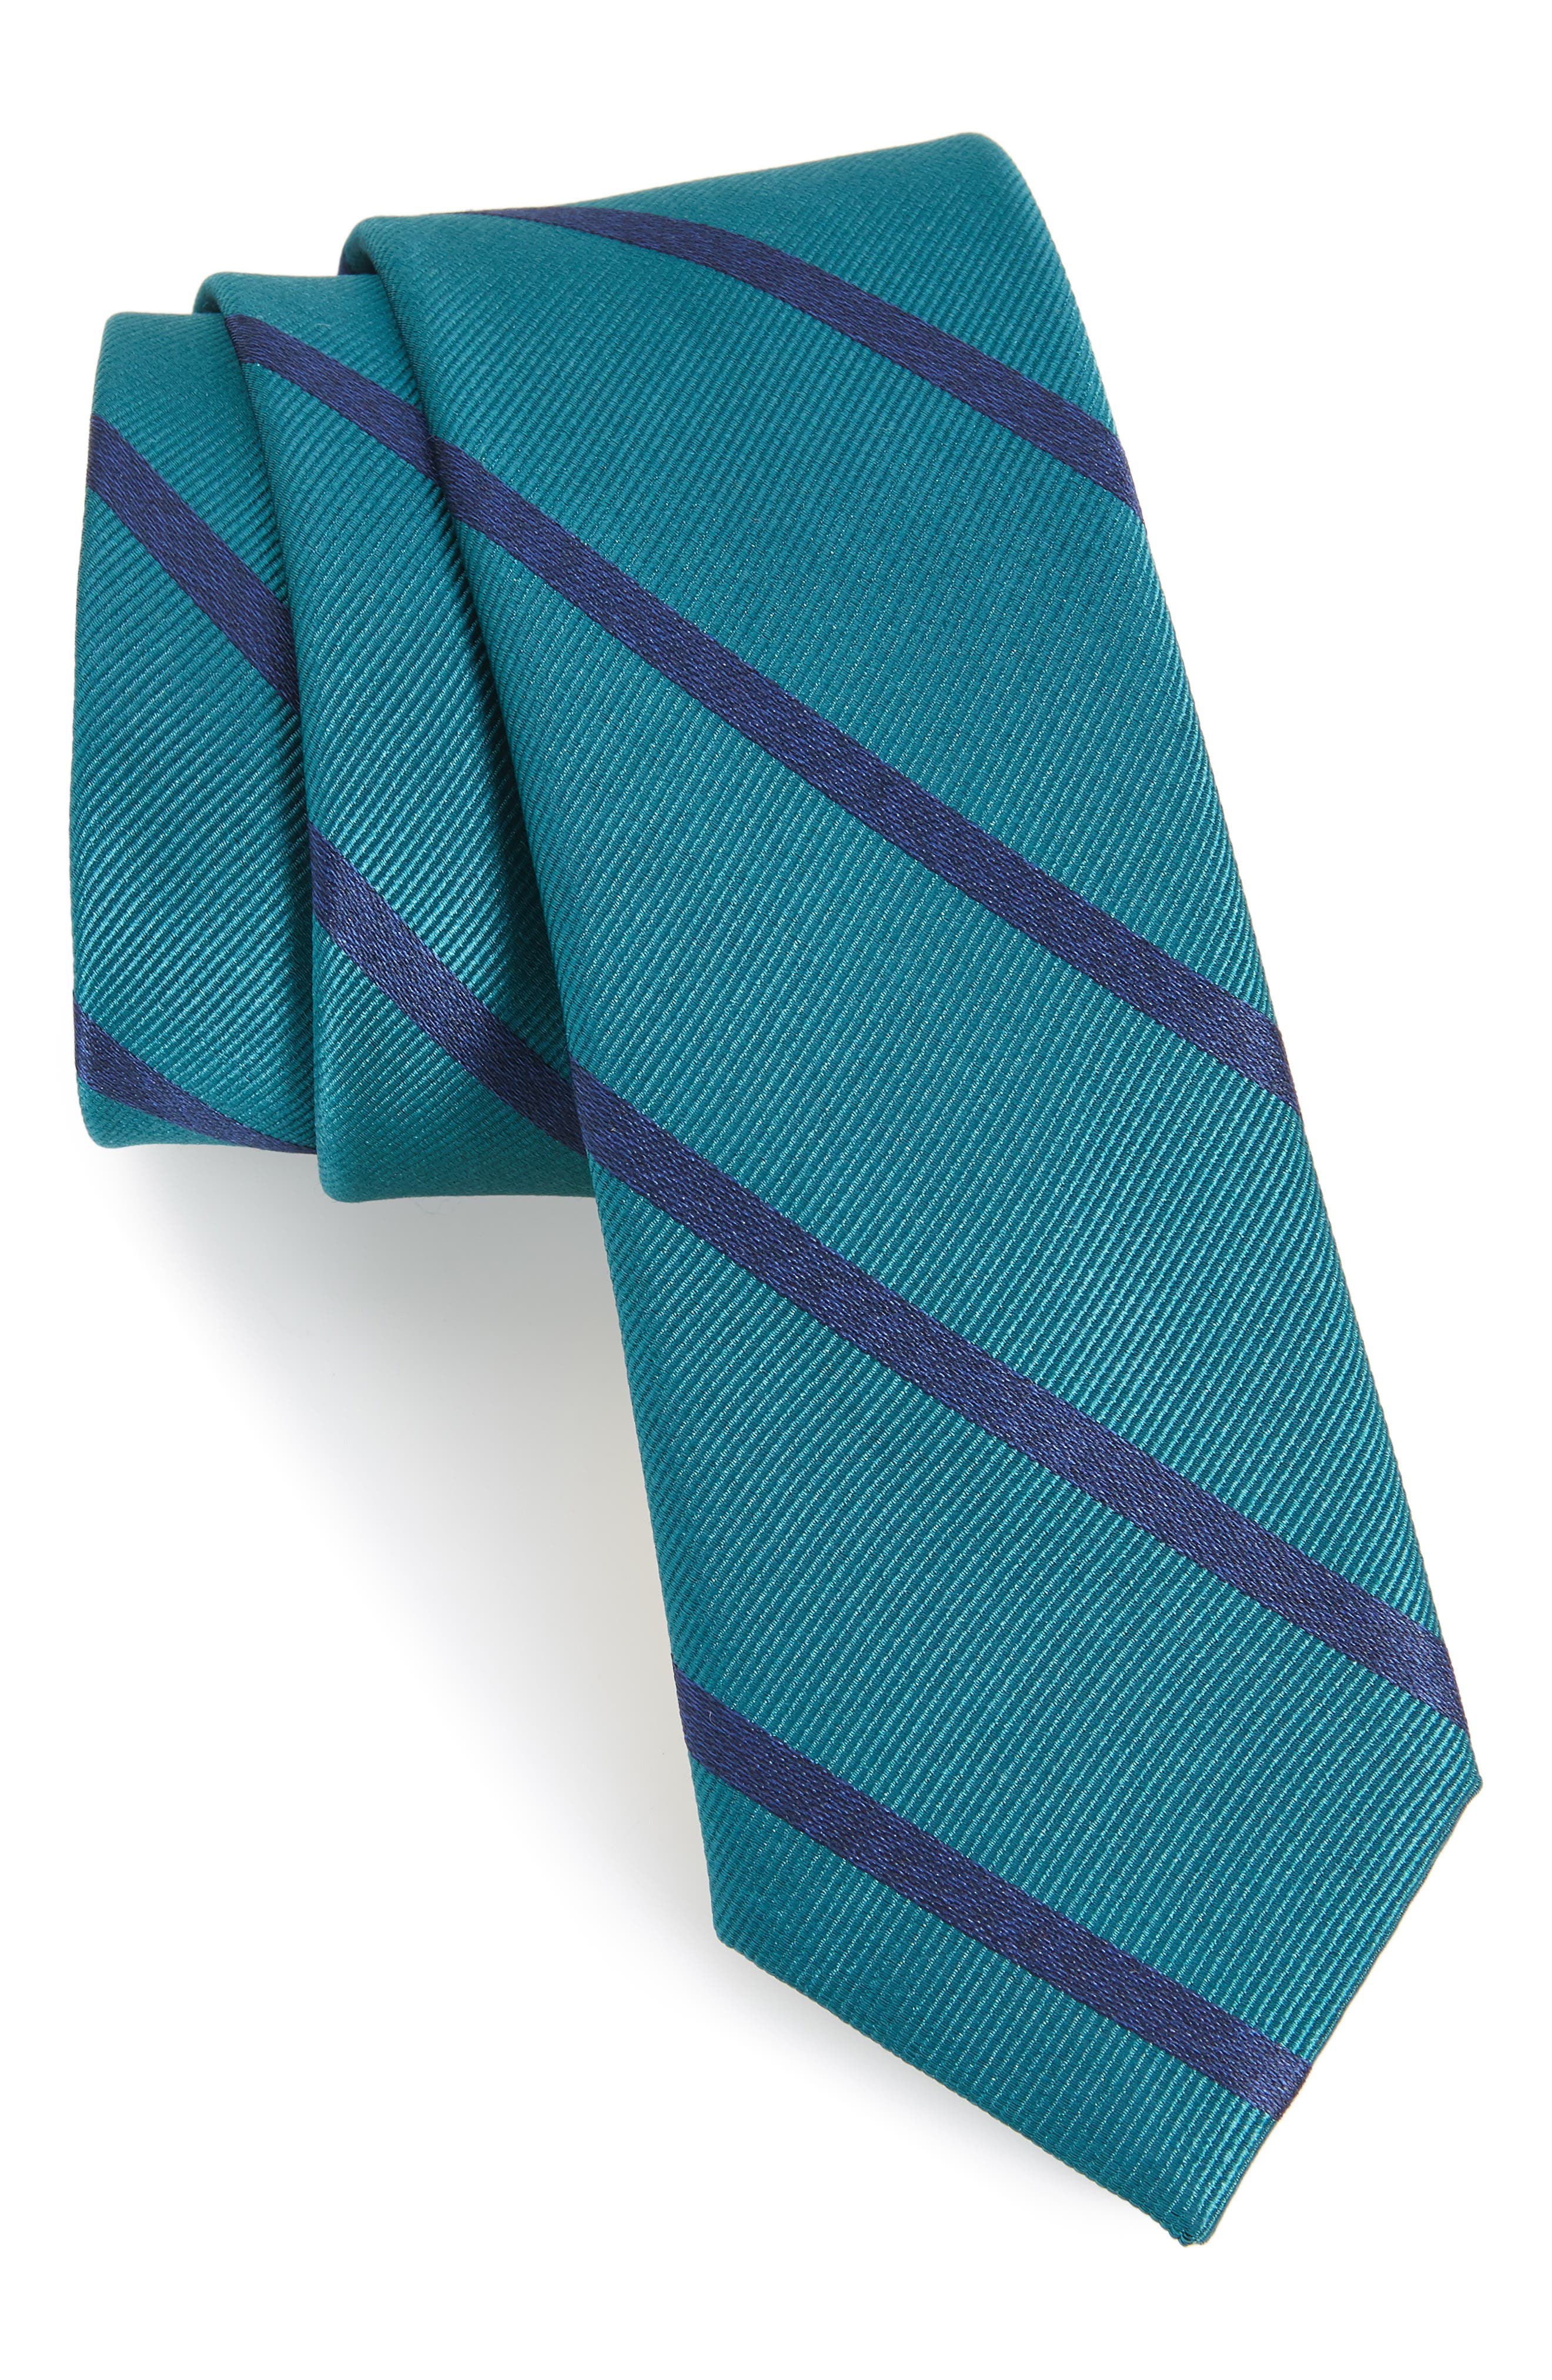 Wheelhouse Stripe Silk Skinny Tie,                             Main thumbnail 1, color,                             Teal